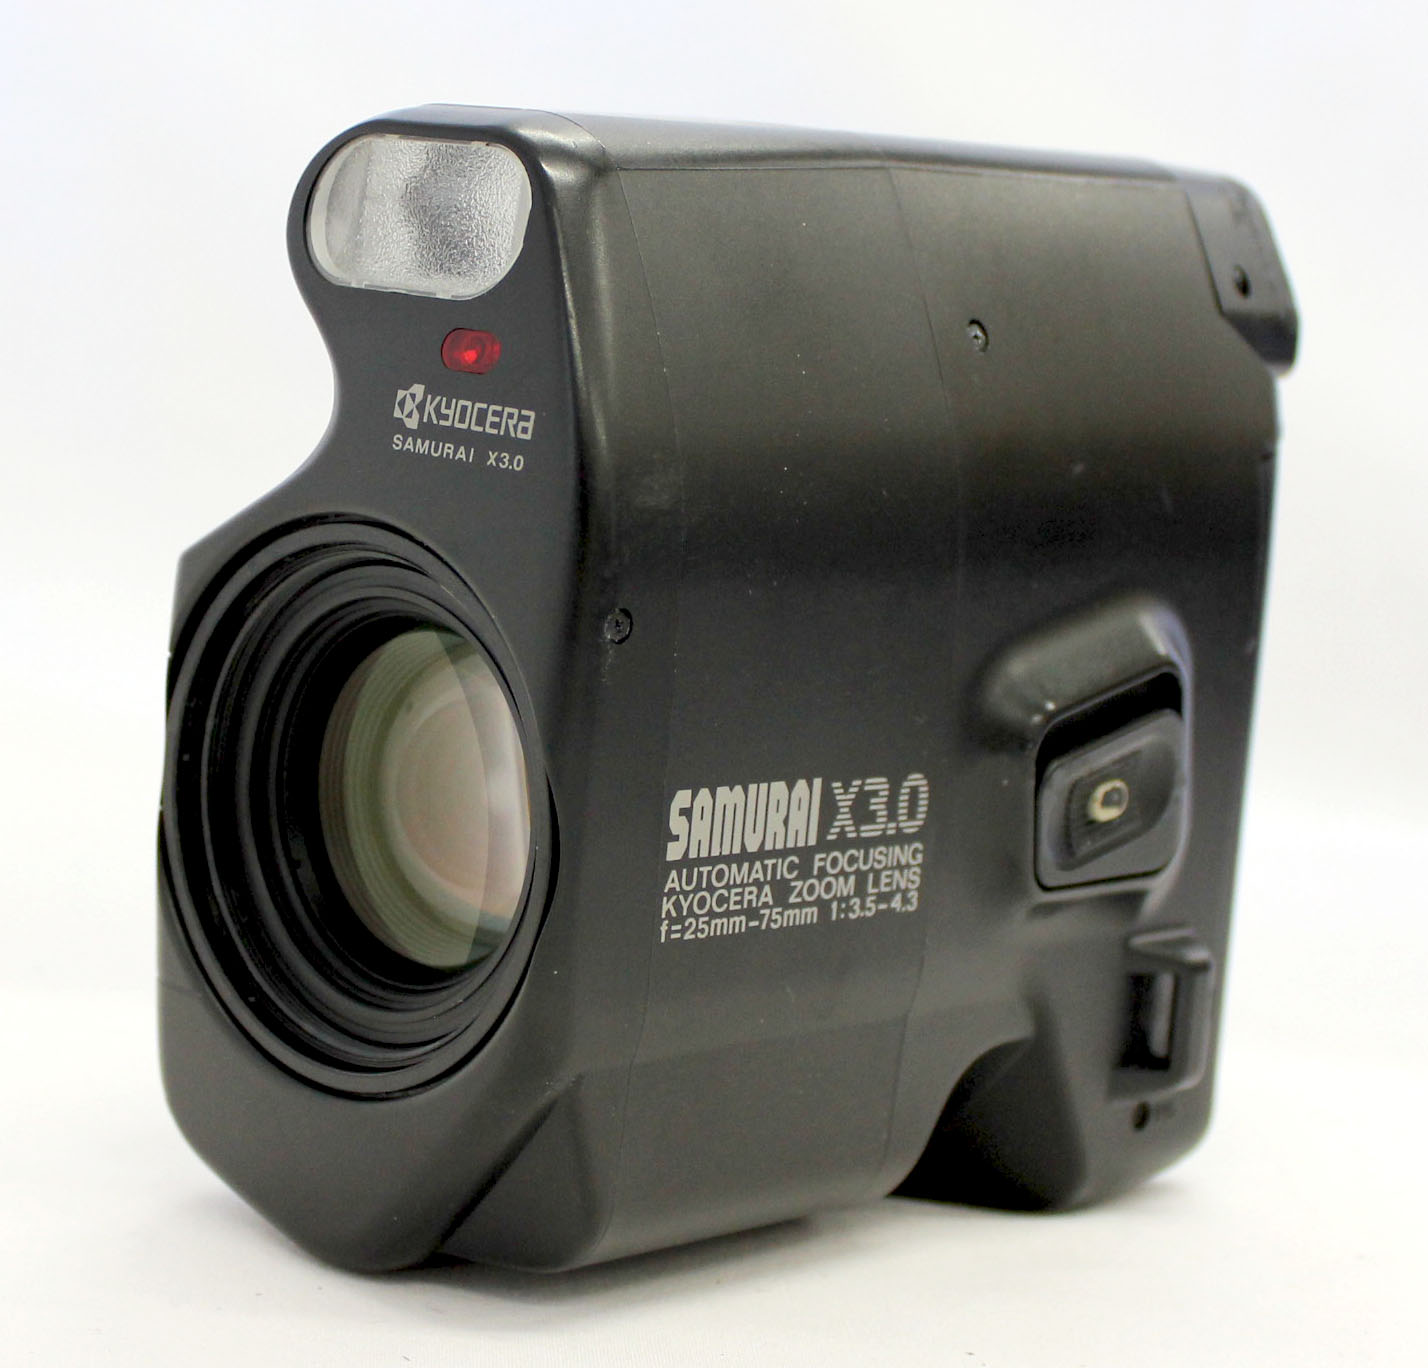 Japan Used Camera Shop | [Excellent++++] Kyocera Samurai X3.0 35mm Half Frame Camera from Japan